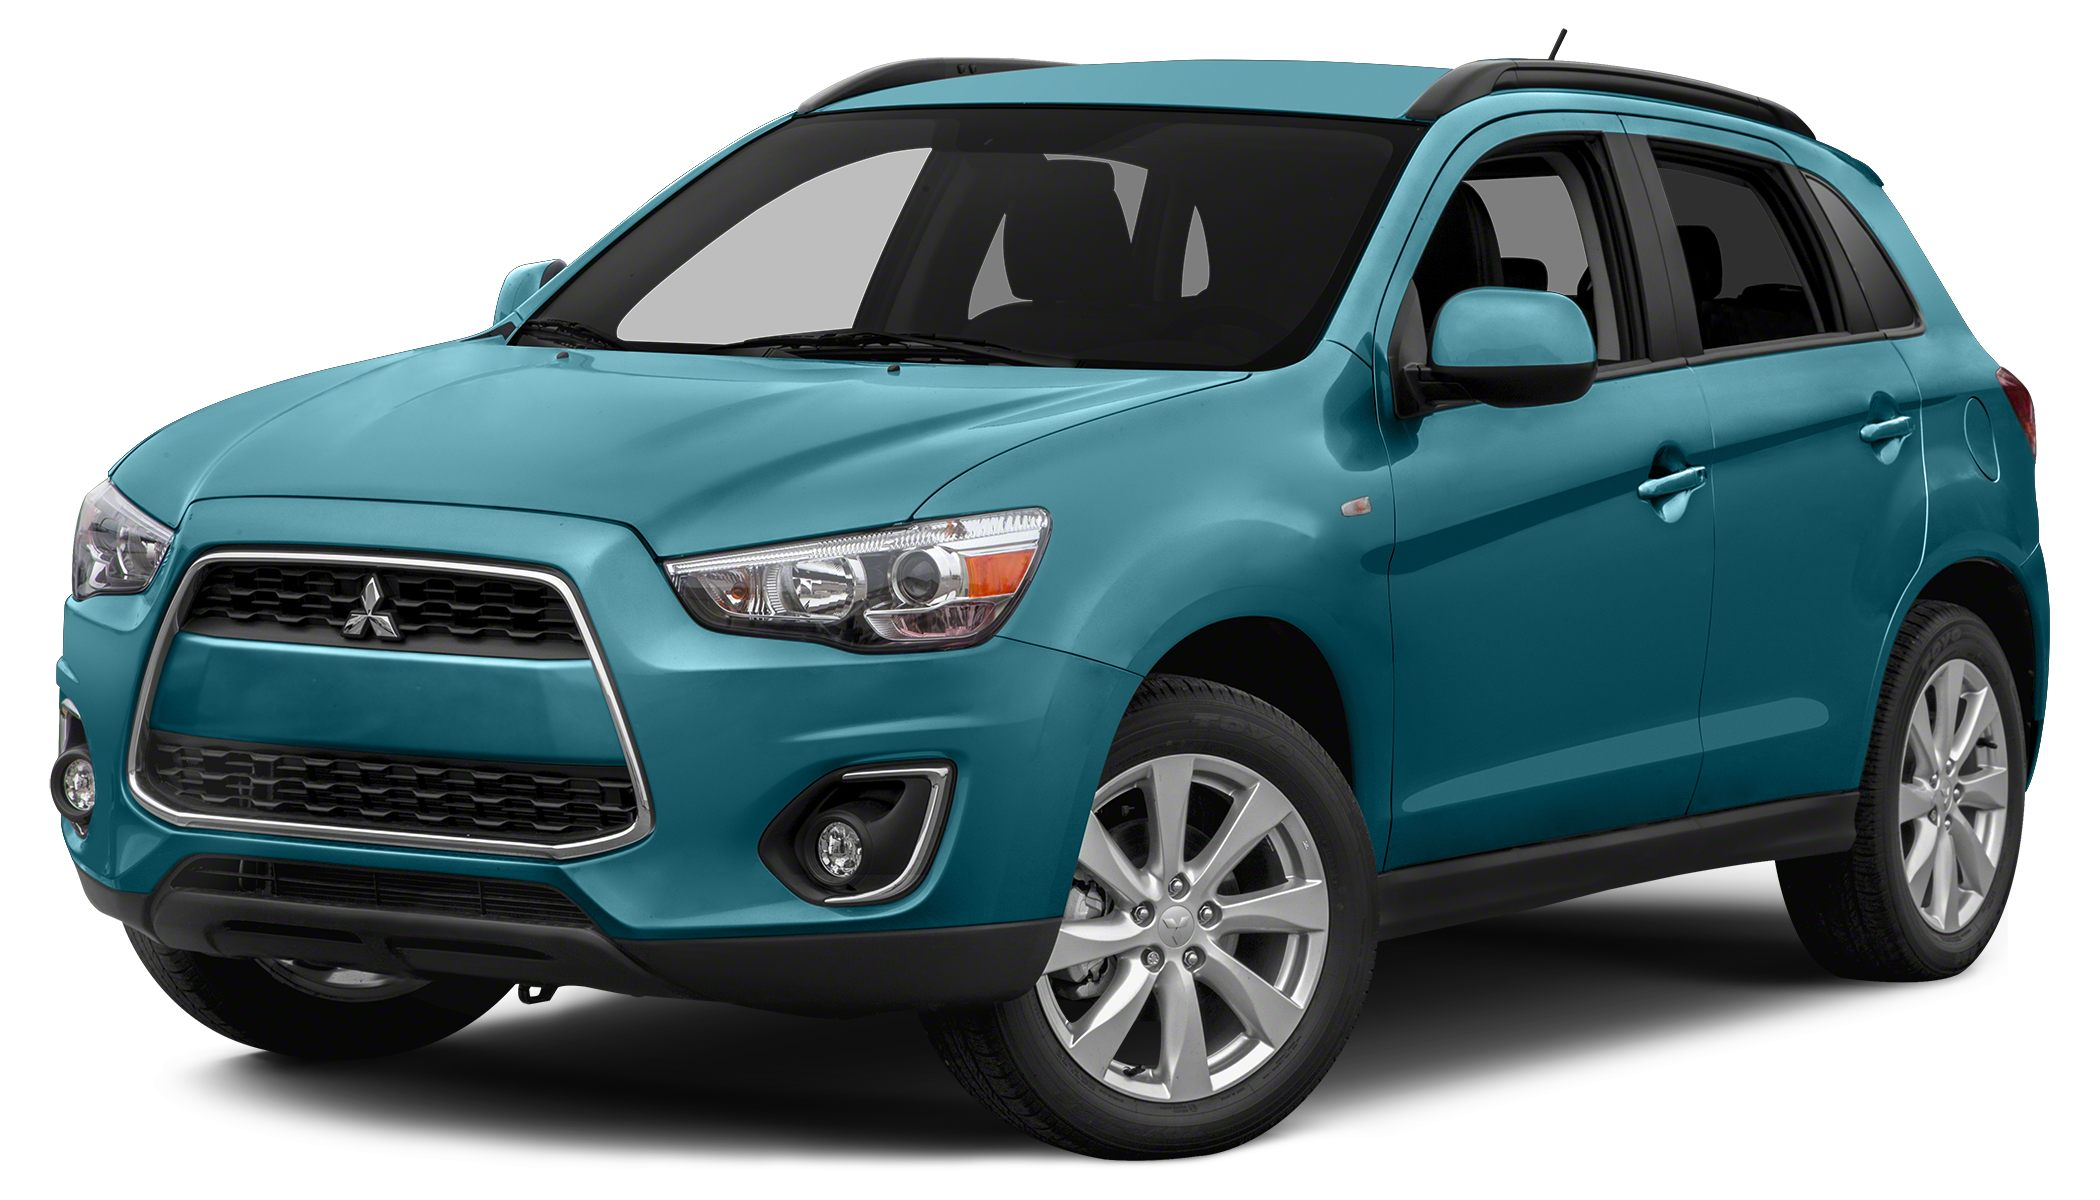 2014 Mitsubishi Outlander Sport SE ONLY 21796 Miles SE trim Heated Seats Bluetooth CD Player